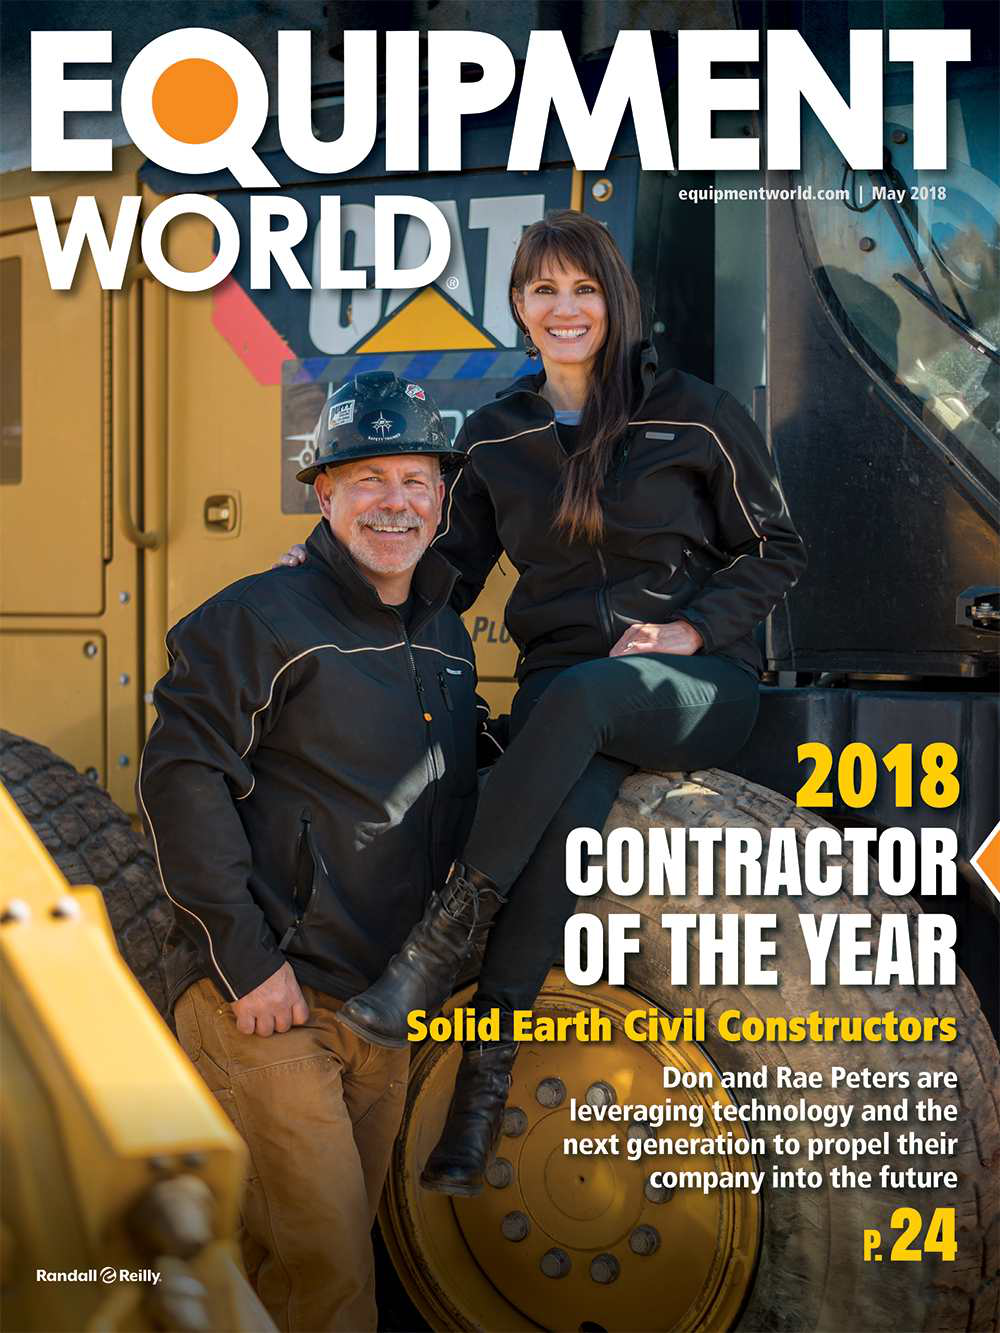 2019 Contractor of the Year Contest Open for Business